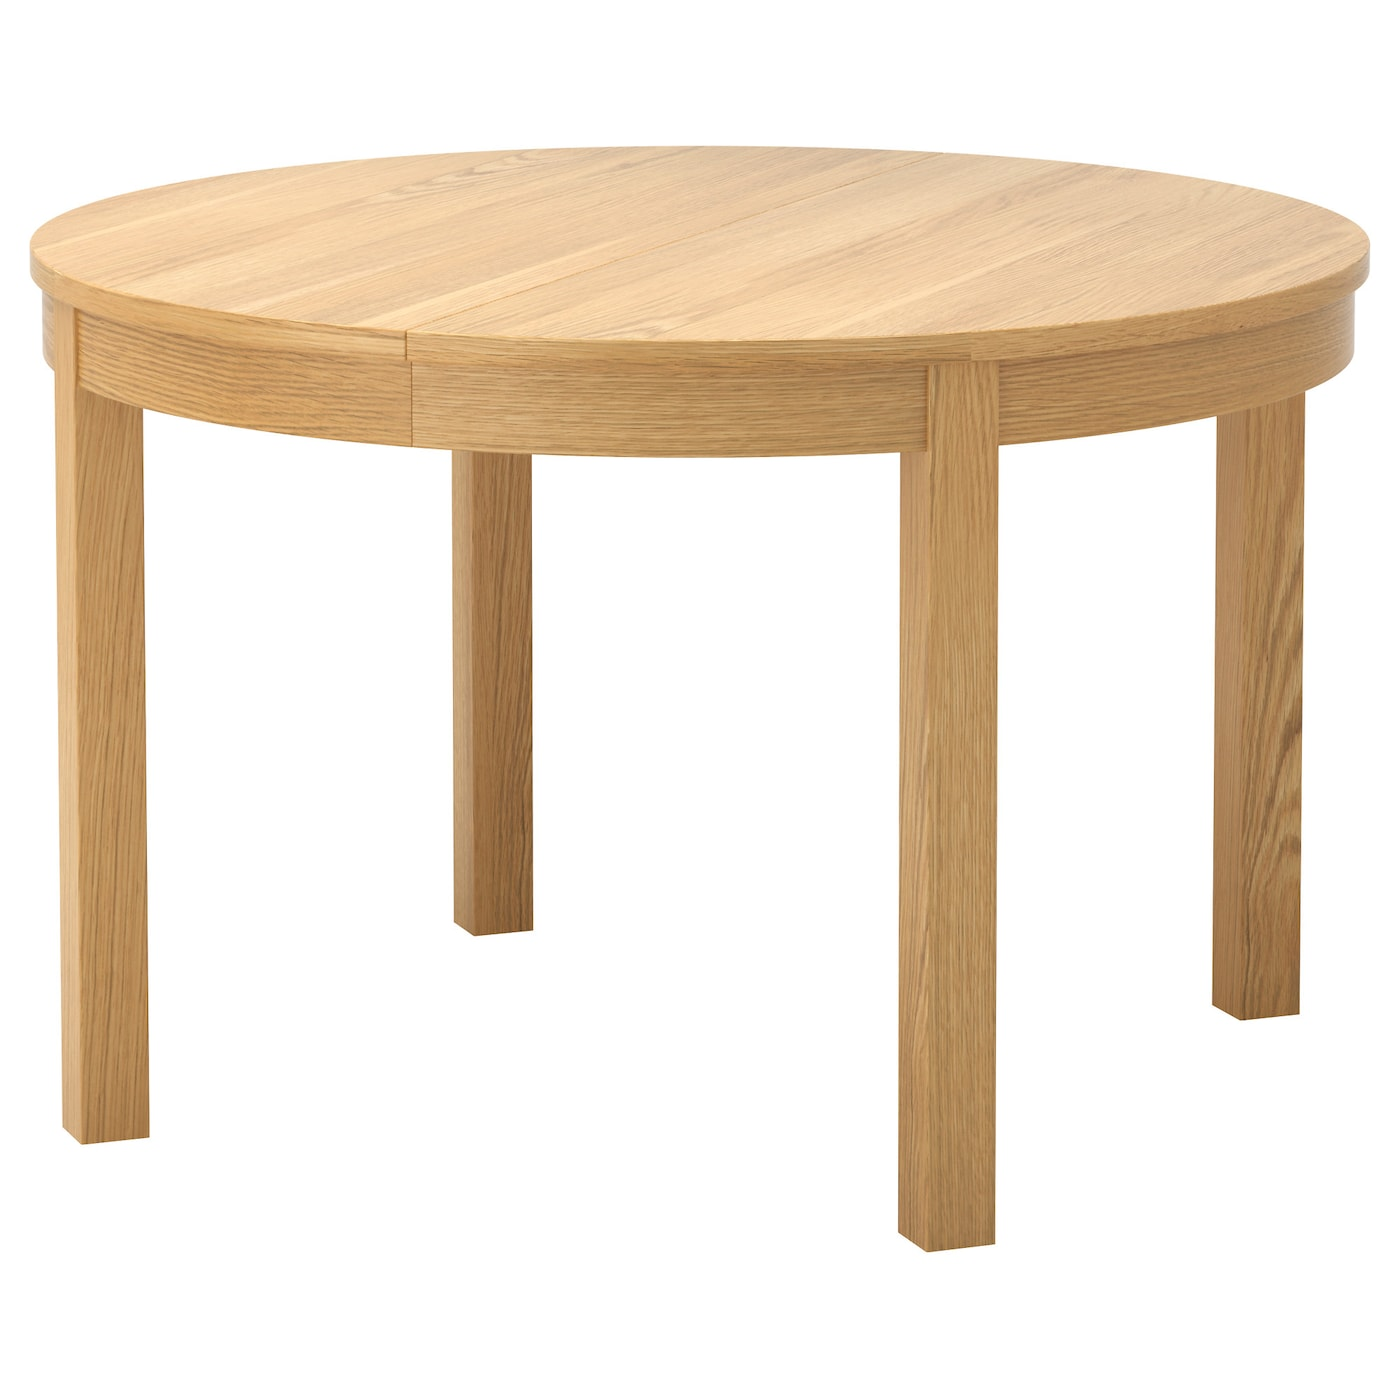 IKEA BJURSTA extendable table 1 extension leaf included.